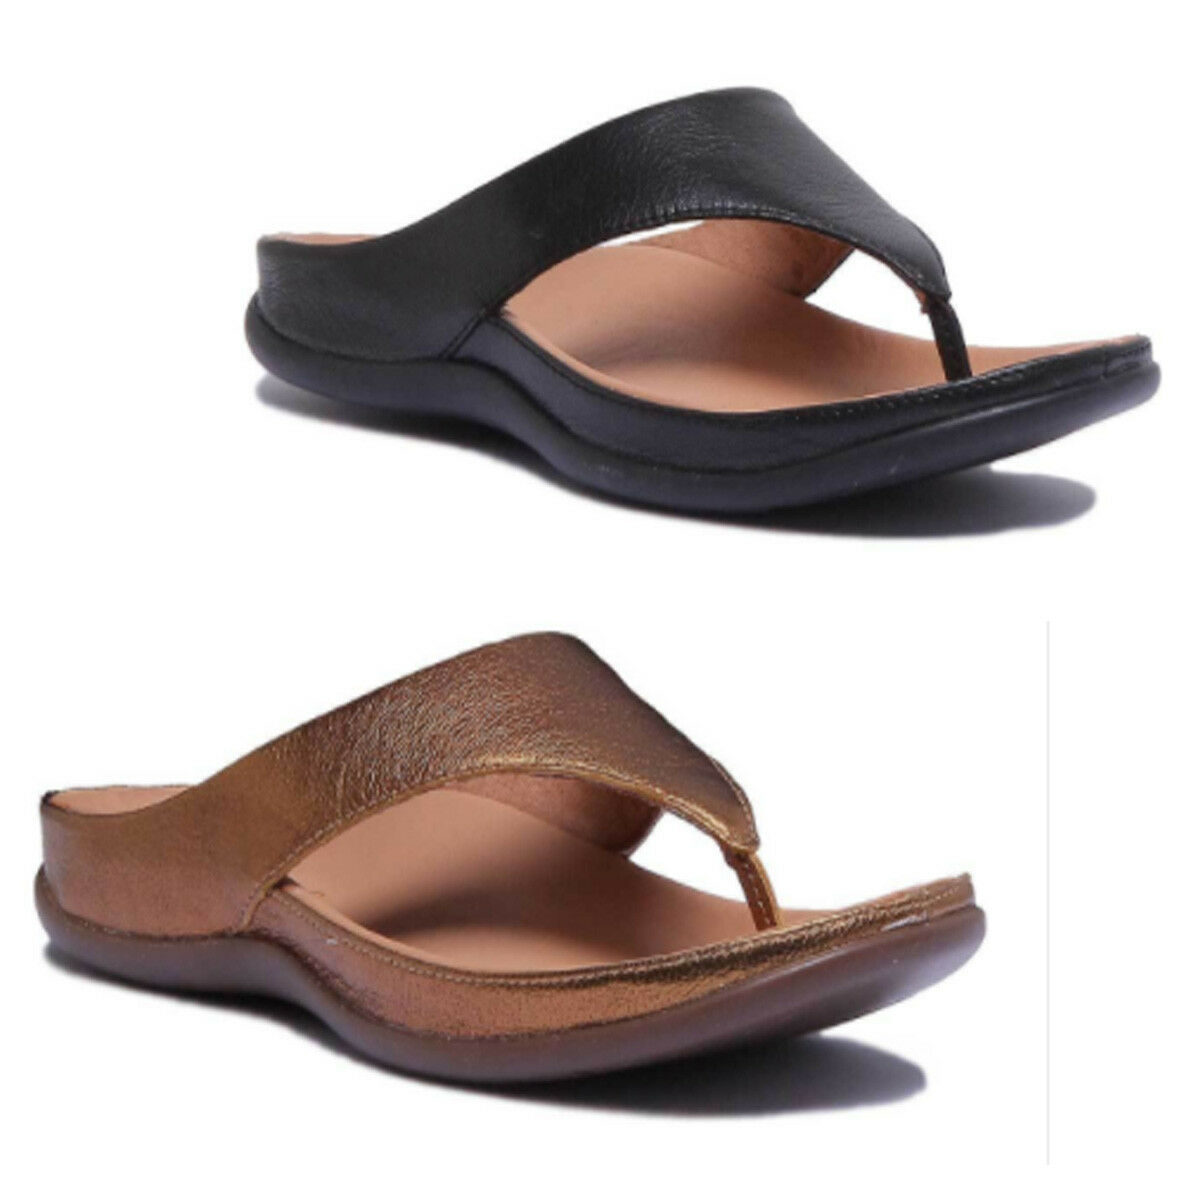 Strive Maui Women Leather Matt Black Toe Post Sandals Size UK 3 - 8